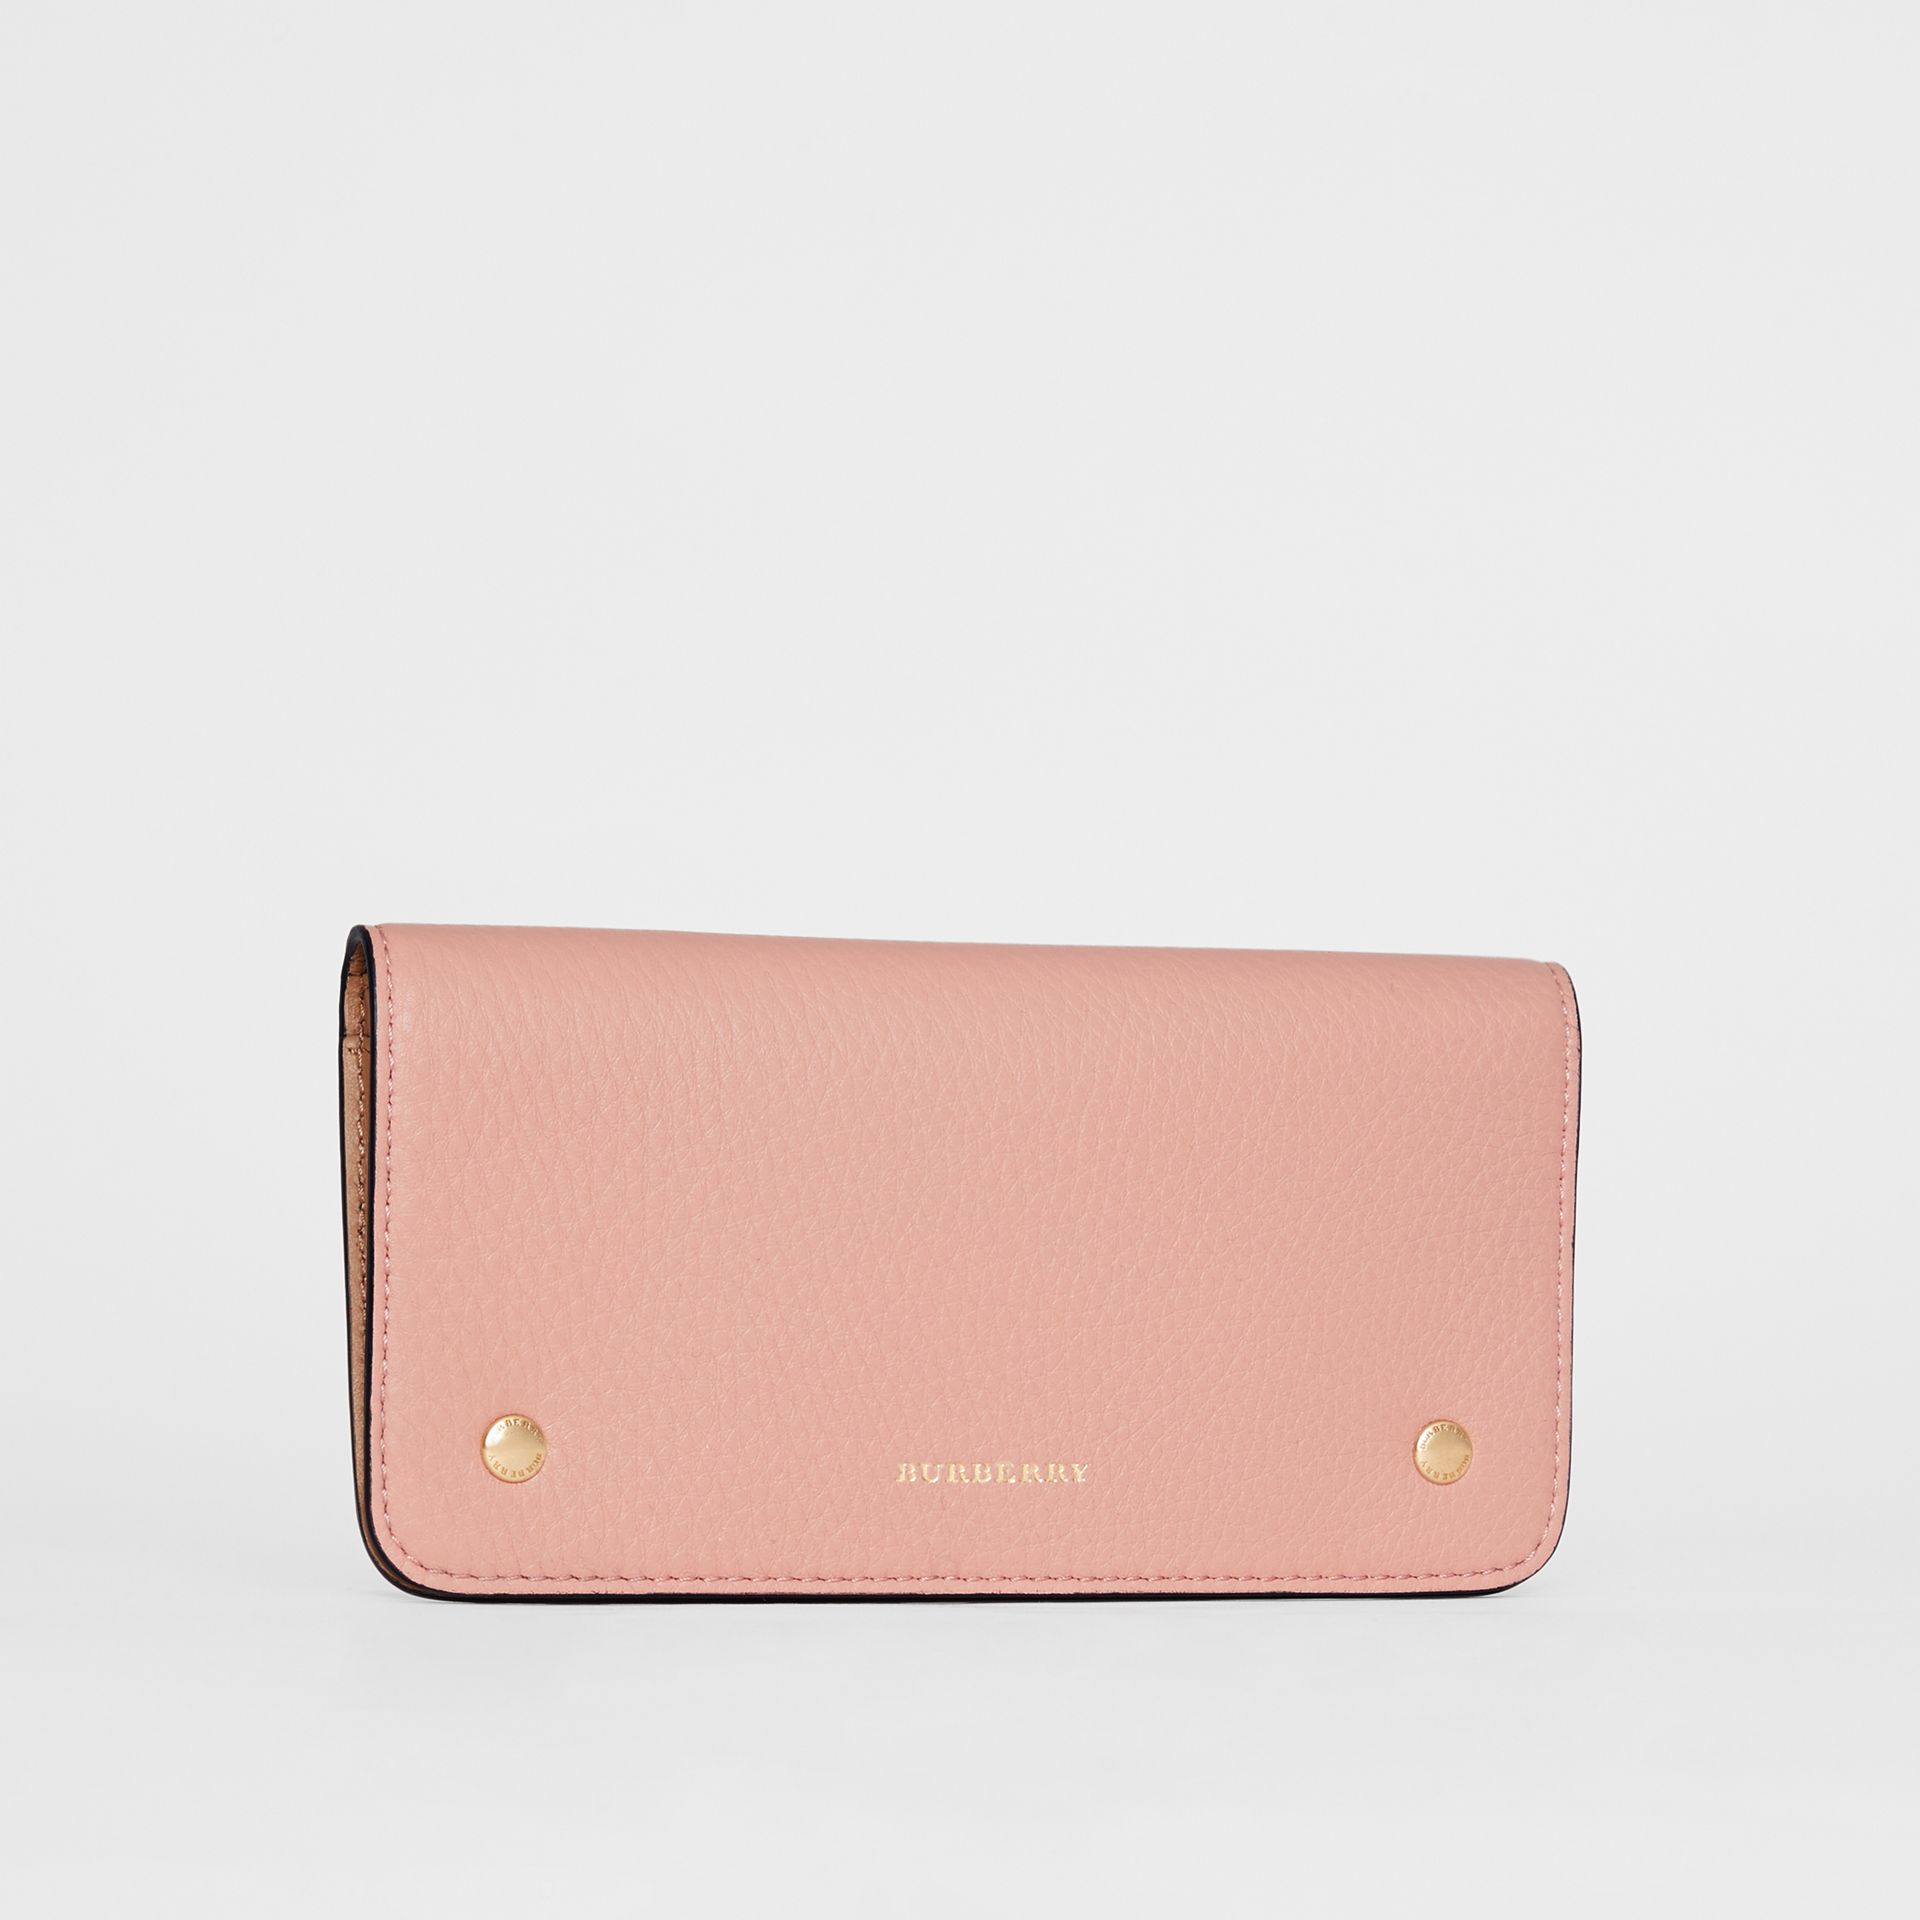 Leather Phone Wallet in Ash Rose - Women | Burberry United States - gallery image 4